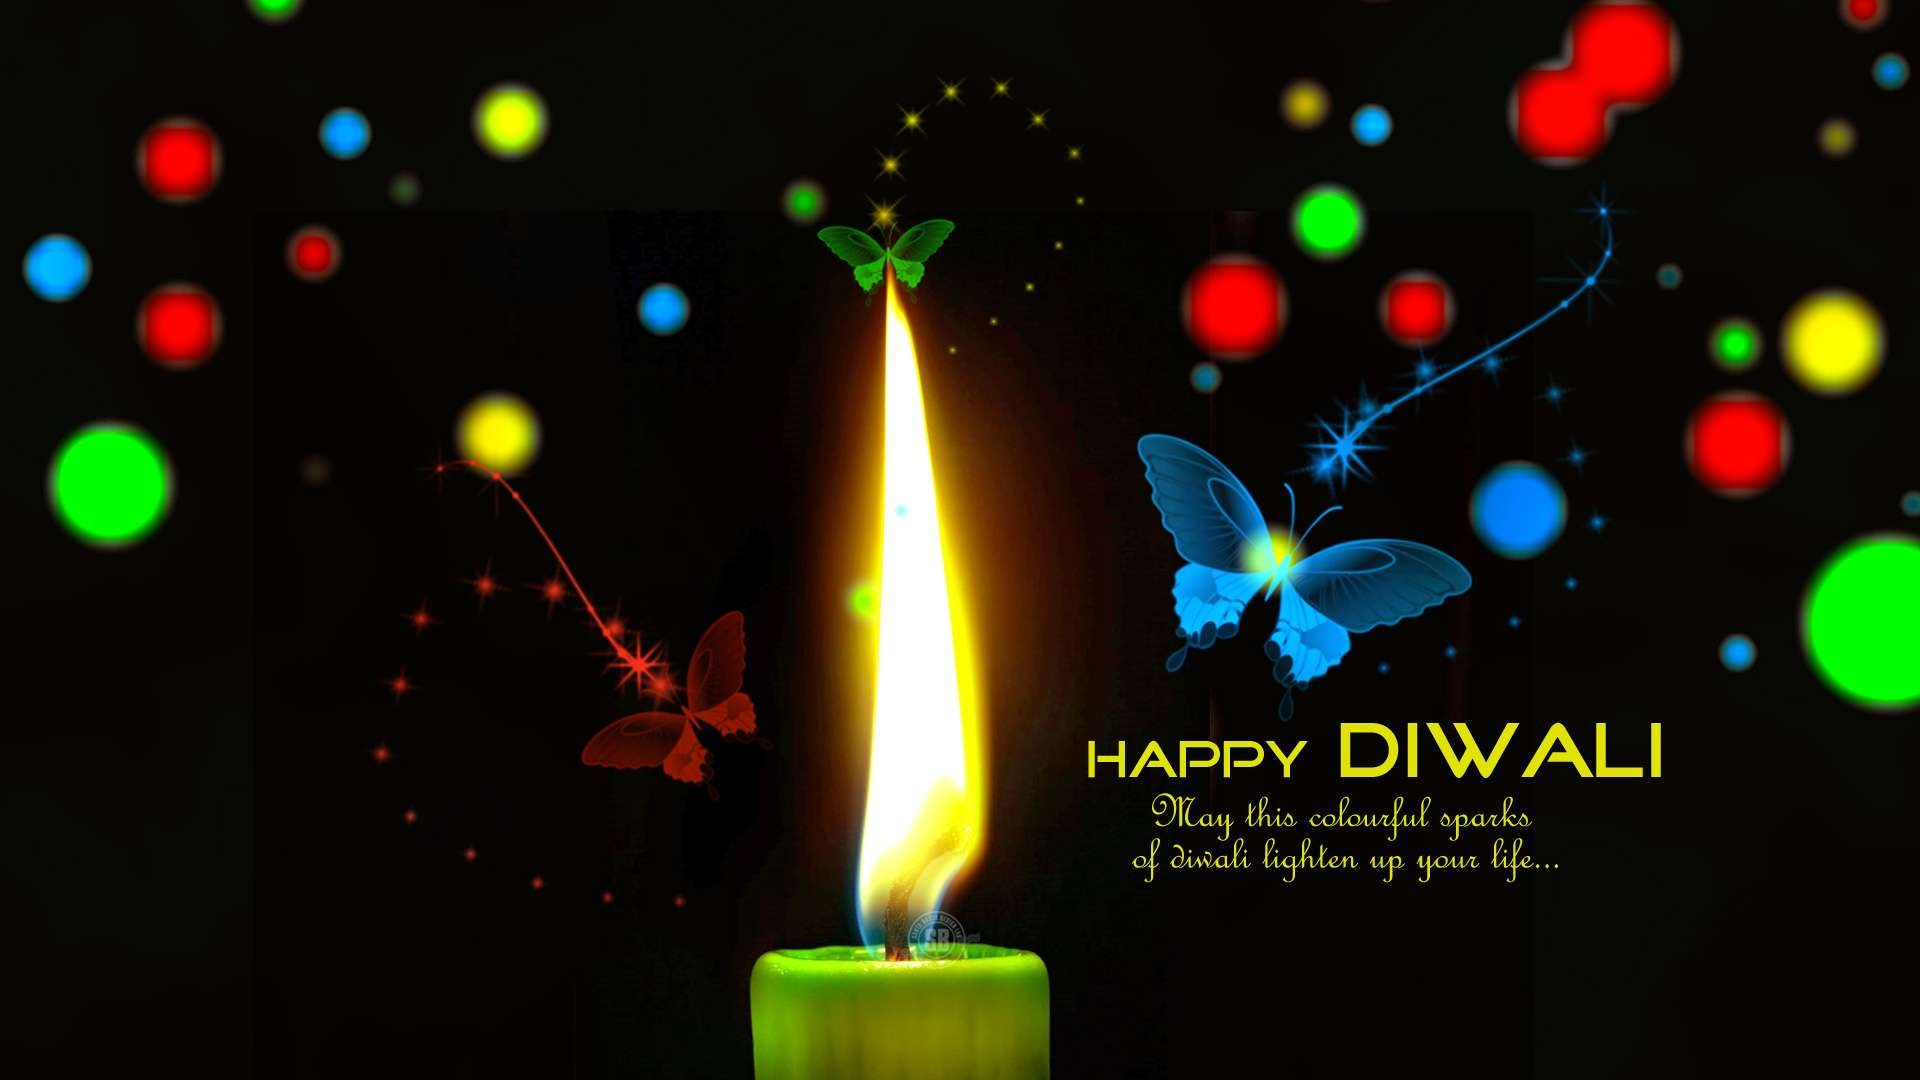 happy diwali wishes greetings background colors cute hd wallpaper